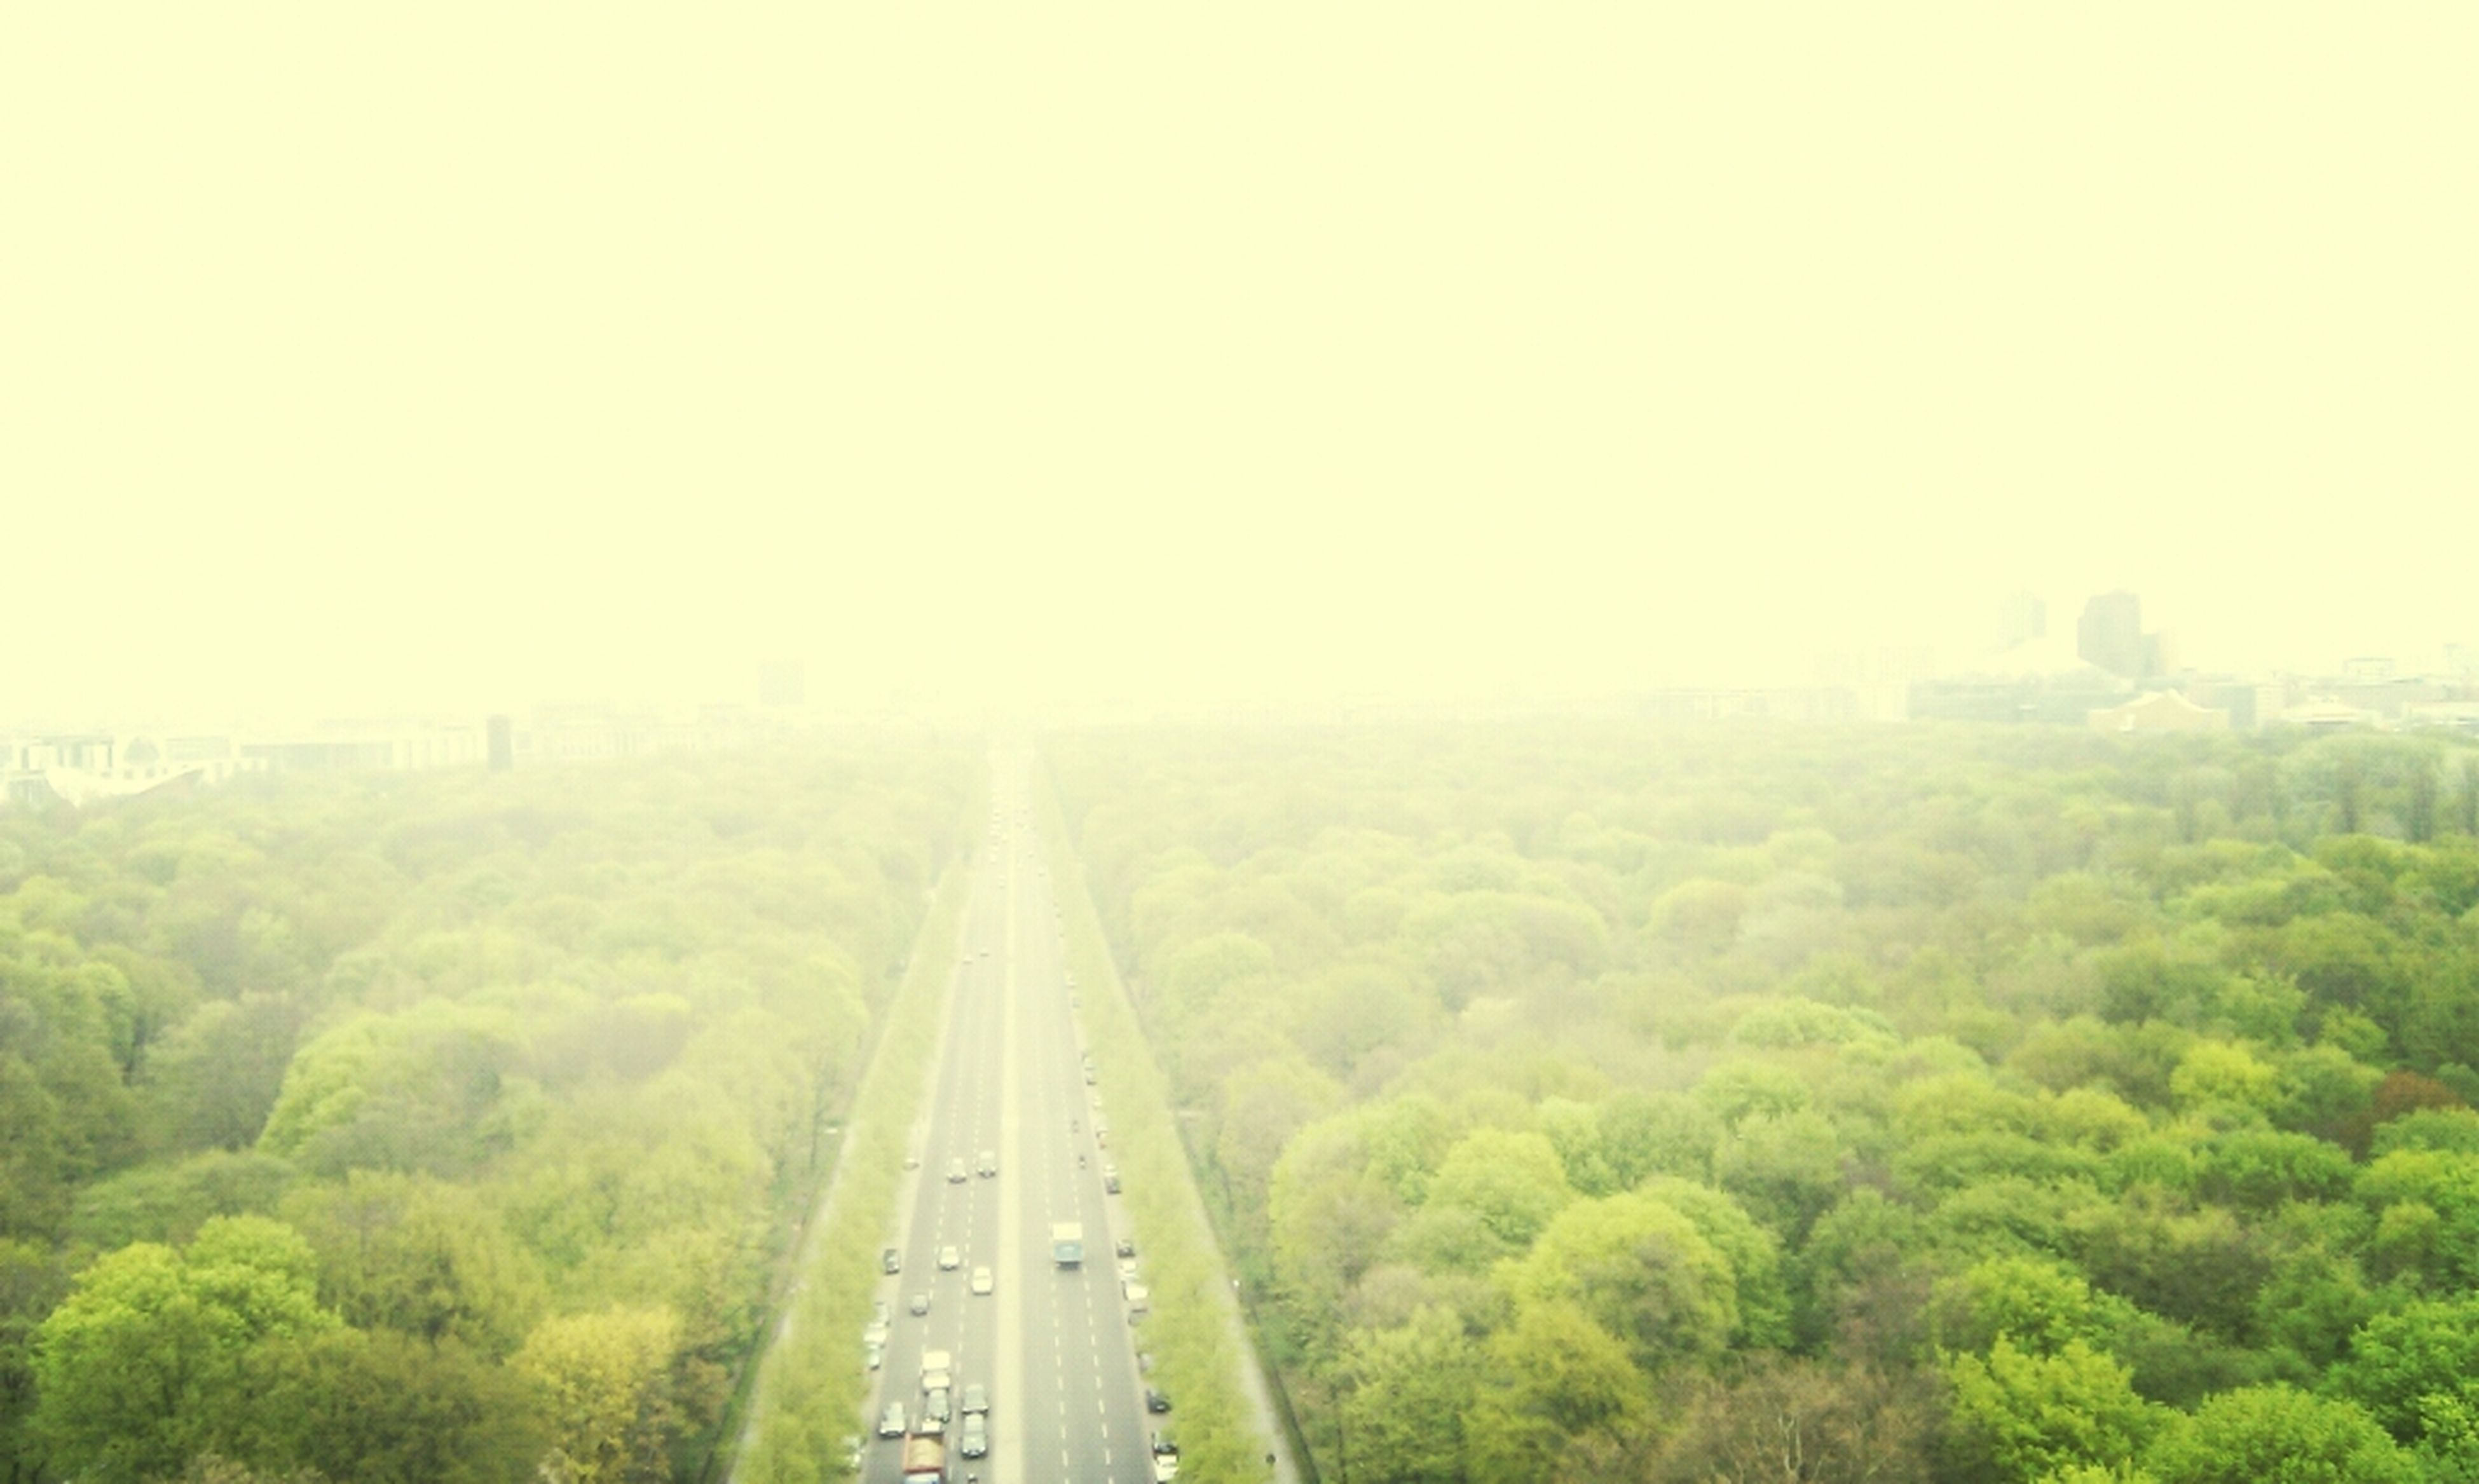 transportation, tree, fog, the way forward, high angle view, green color, diminishing perspective, vanishing point, foggy, road, growth, landscape, nature, copy space, tranquility, tranquil scene, day, beauty in nature, outdoors